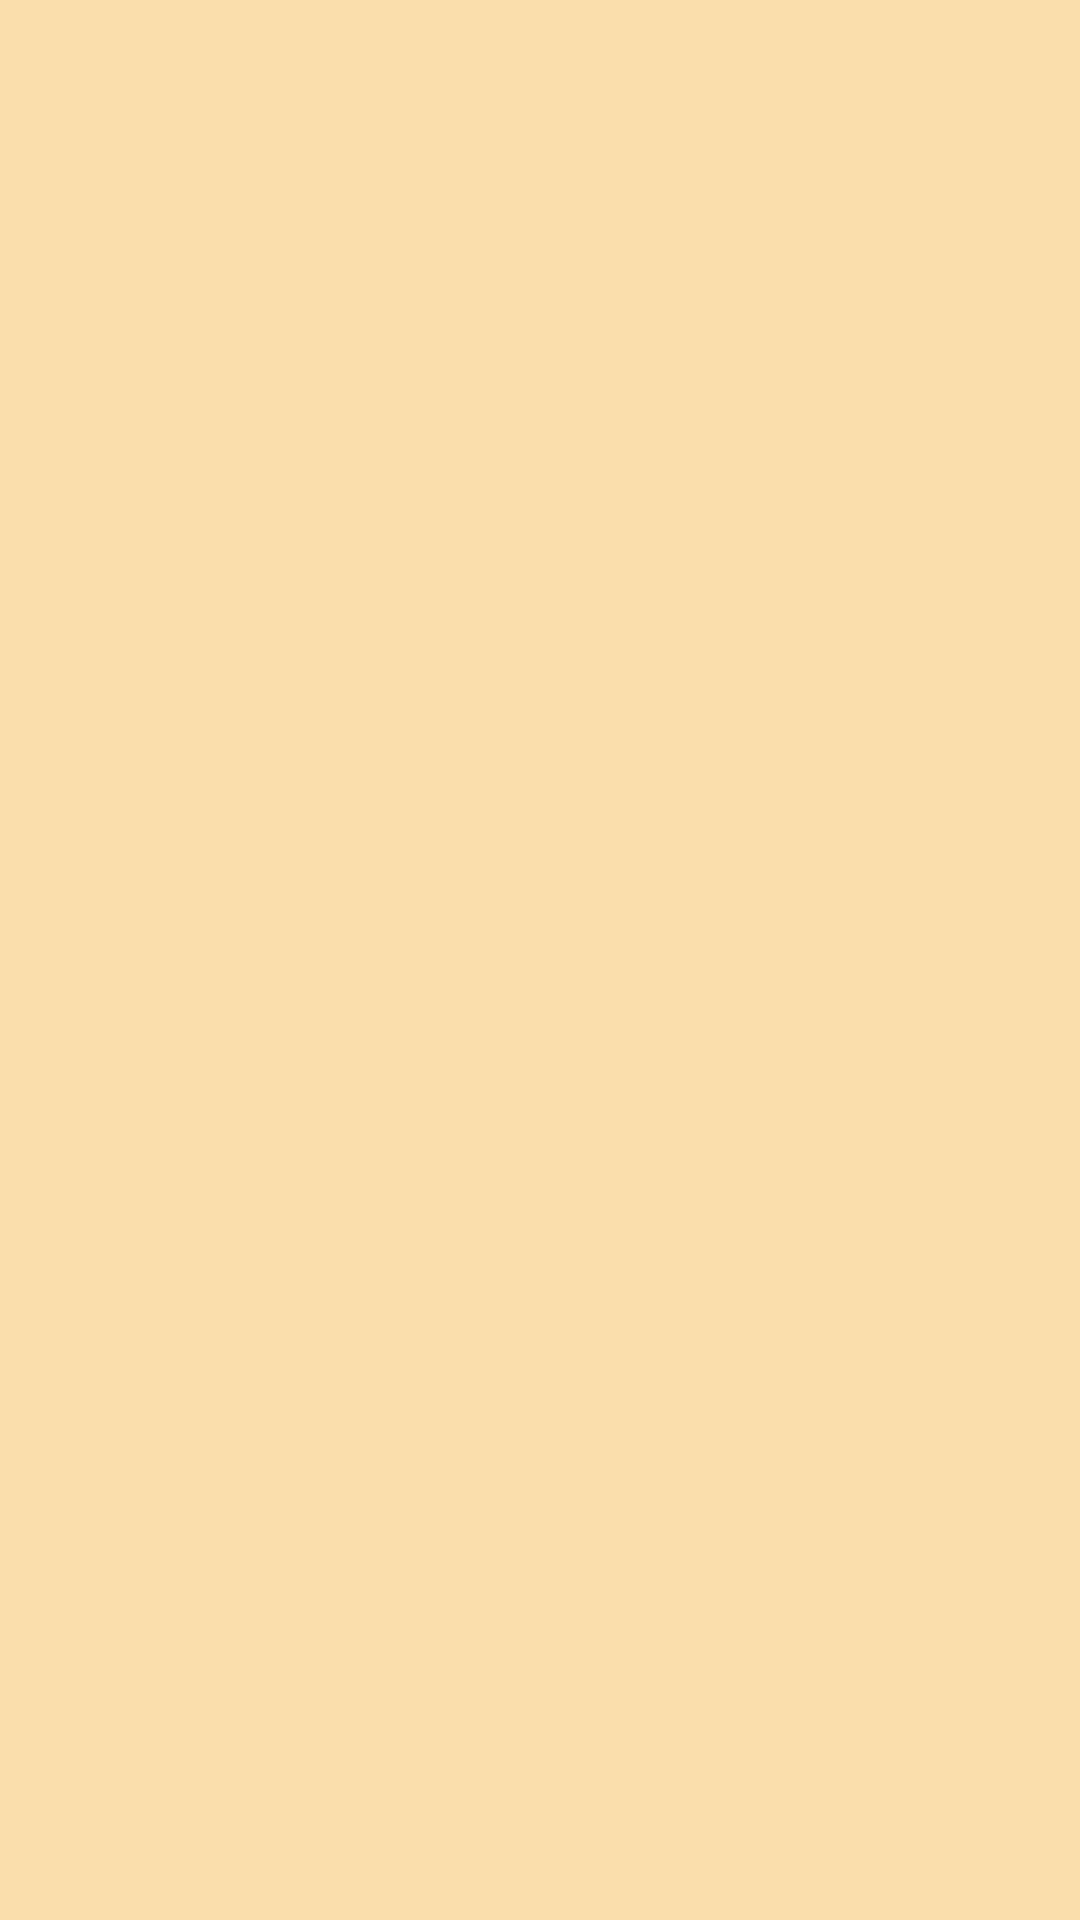 1080x1920 Peach-yellow Solid Color Background